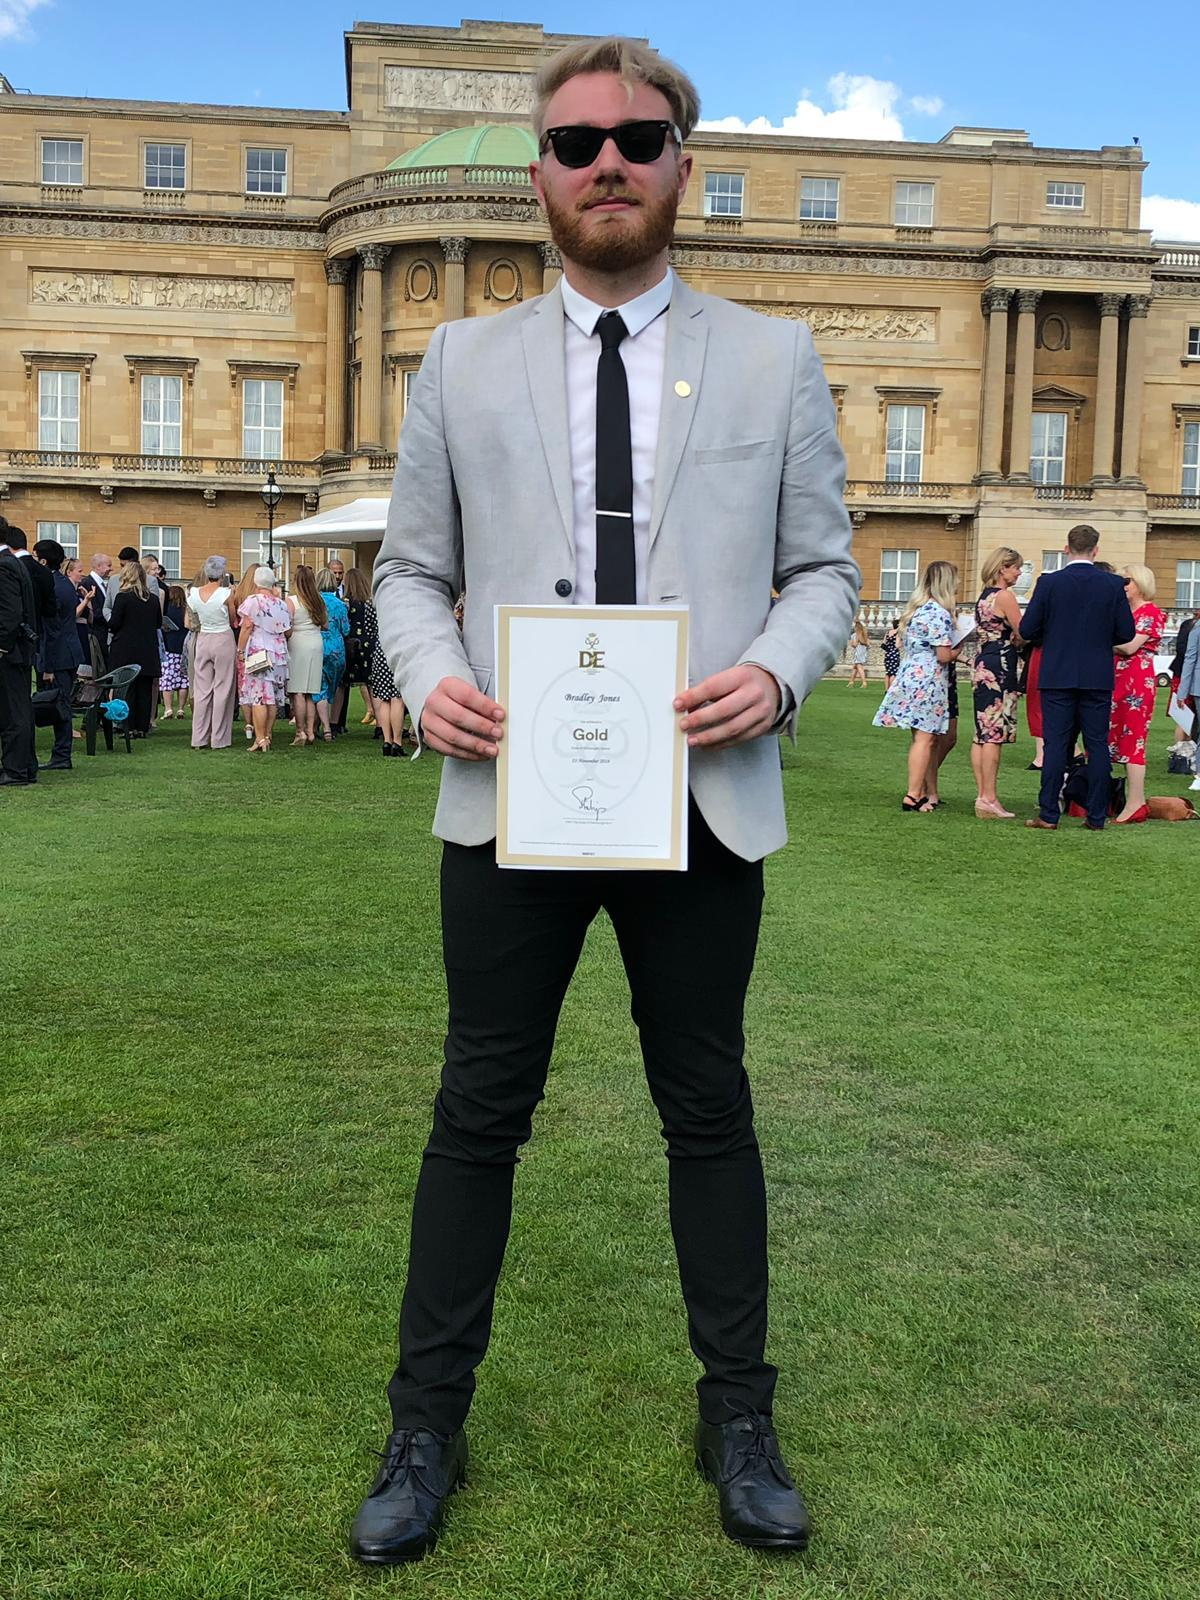 Bradley Jones with his DoE Gold Award at Buckingham Palace